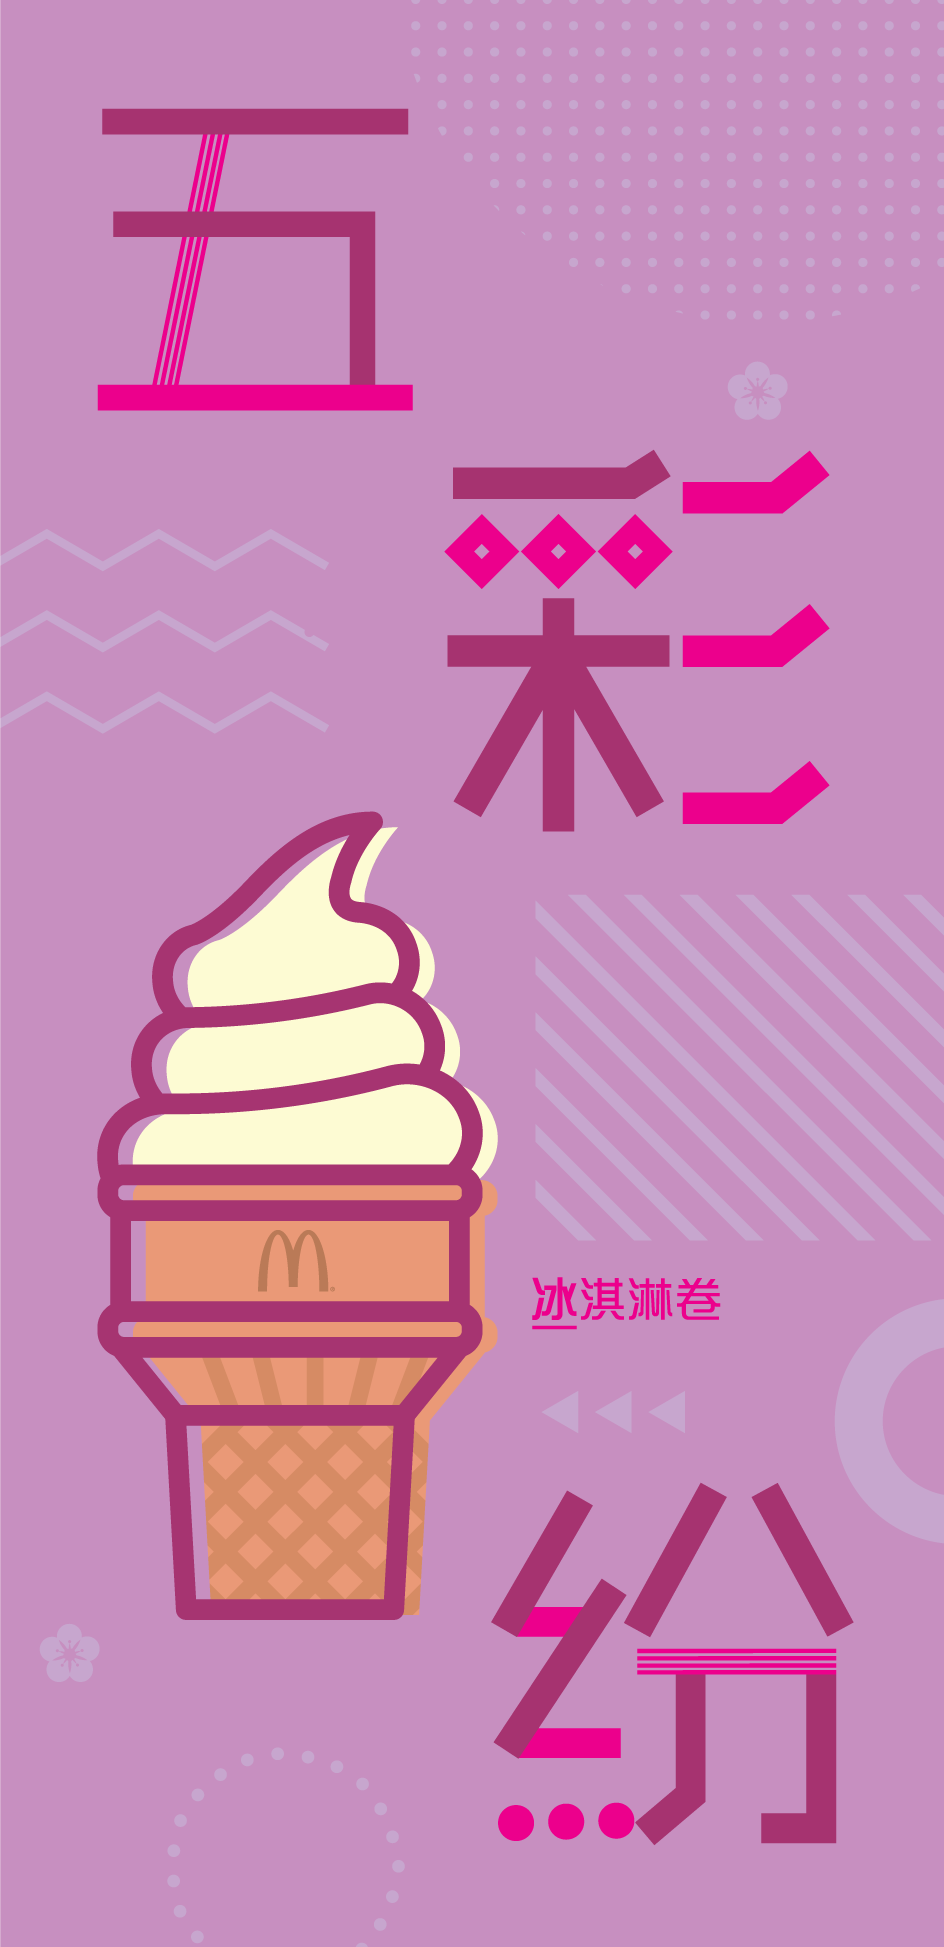 McDonald's kicks off the Lunar New Year with the return of the Prosperity Burger